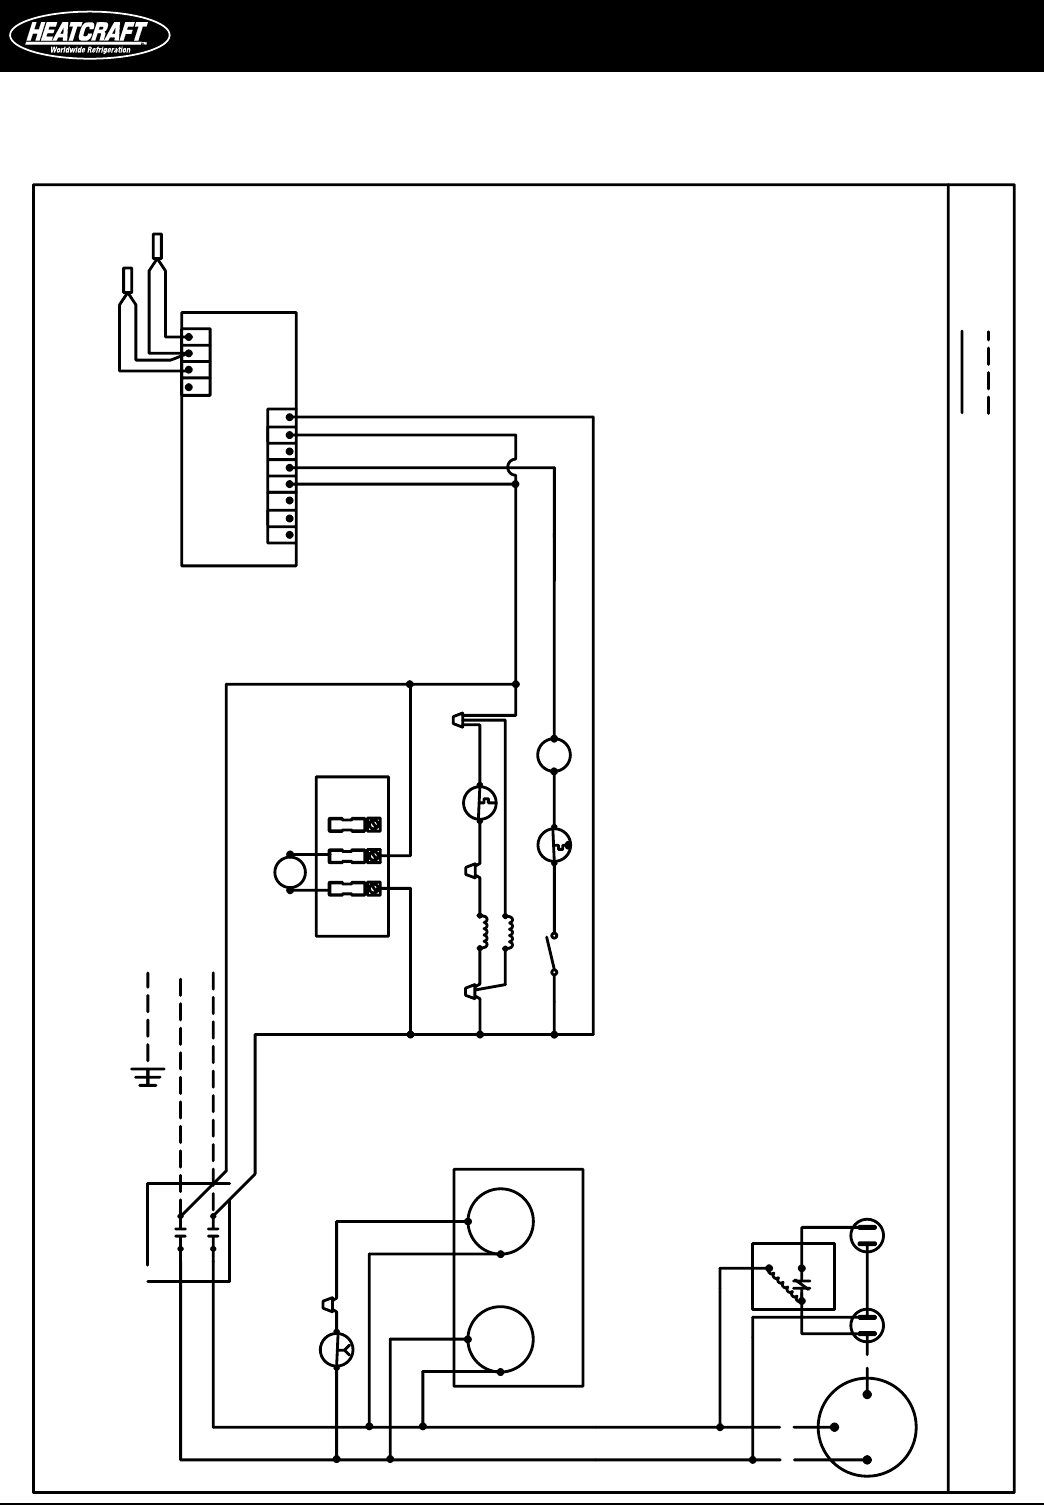 55587f91 c859 def4 0921 730c5709c050 bg10 page 16 of heatcraft refrigeration products refrigerator pro3 user refrigerator wiring diagram pdf at alyssarenee.co